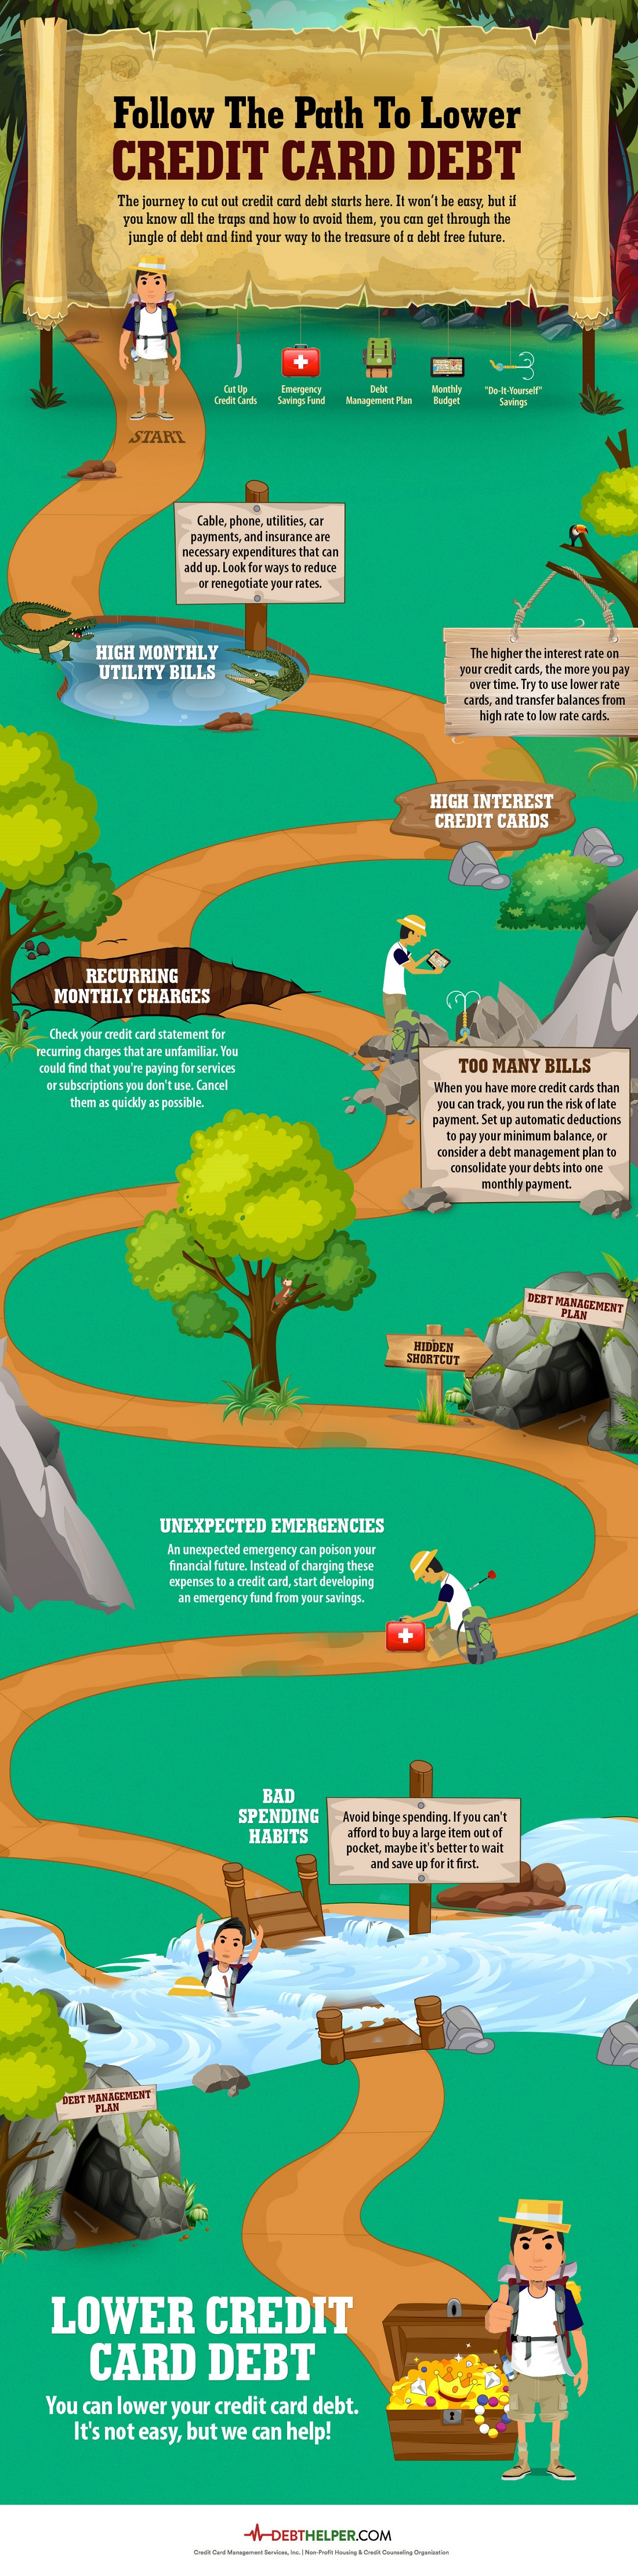 Credit-card-jungle-theme-infographic